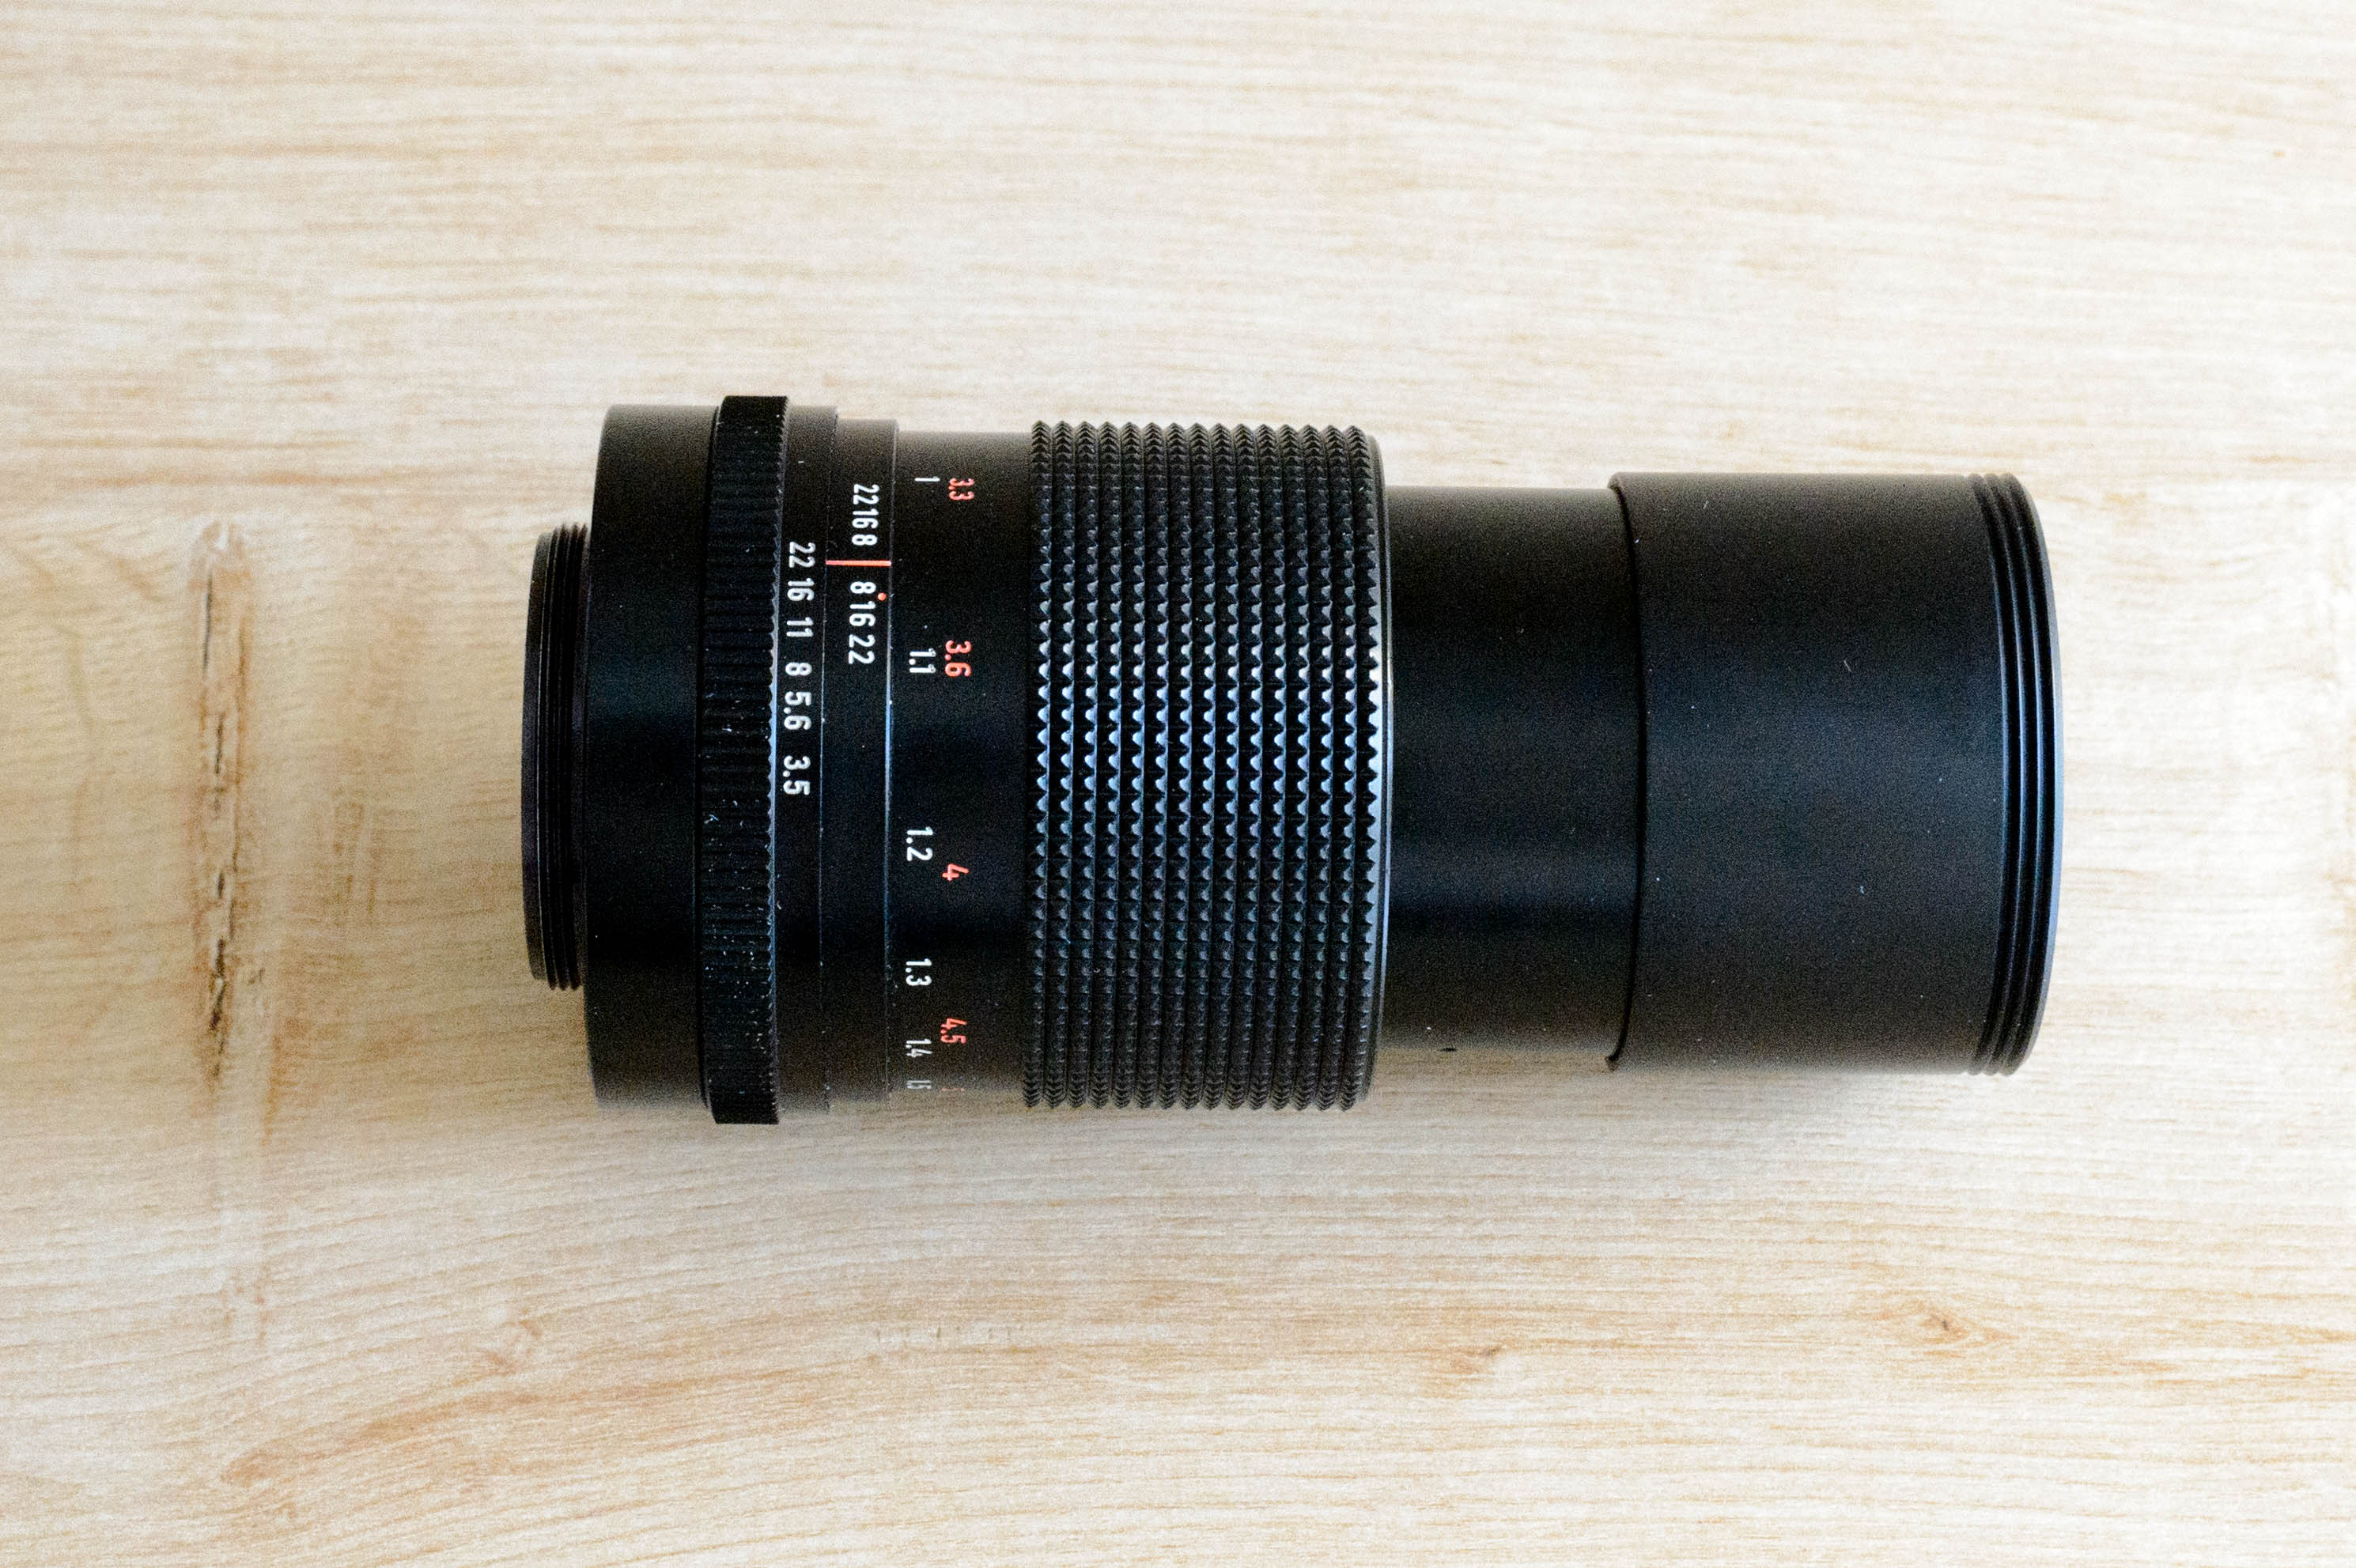 Carl Zeiss Jena MC Sonnar 3.5/135 Profil